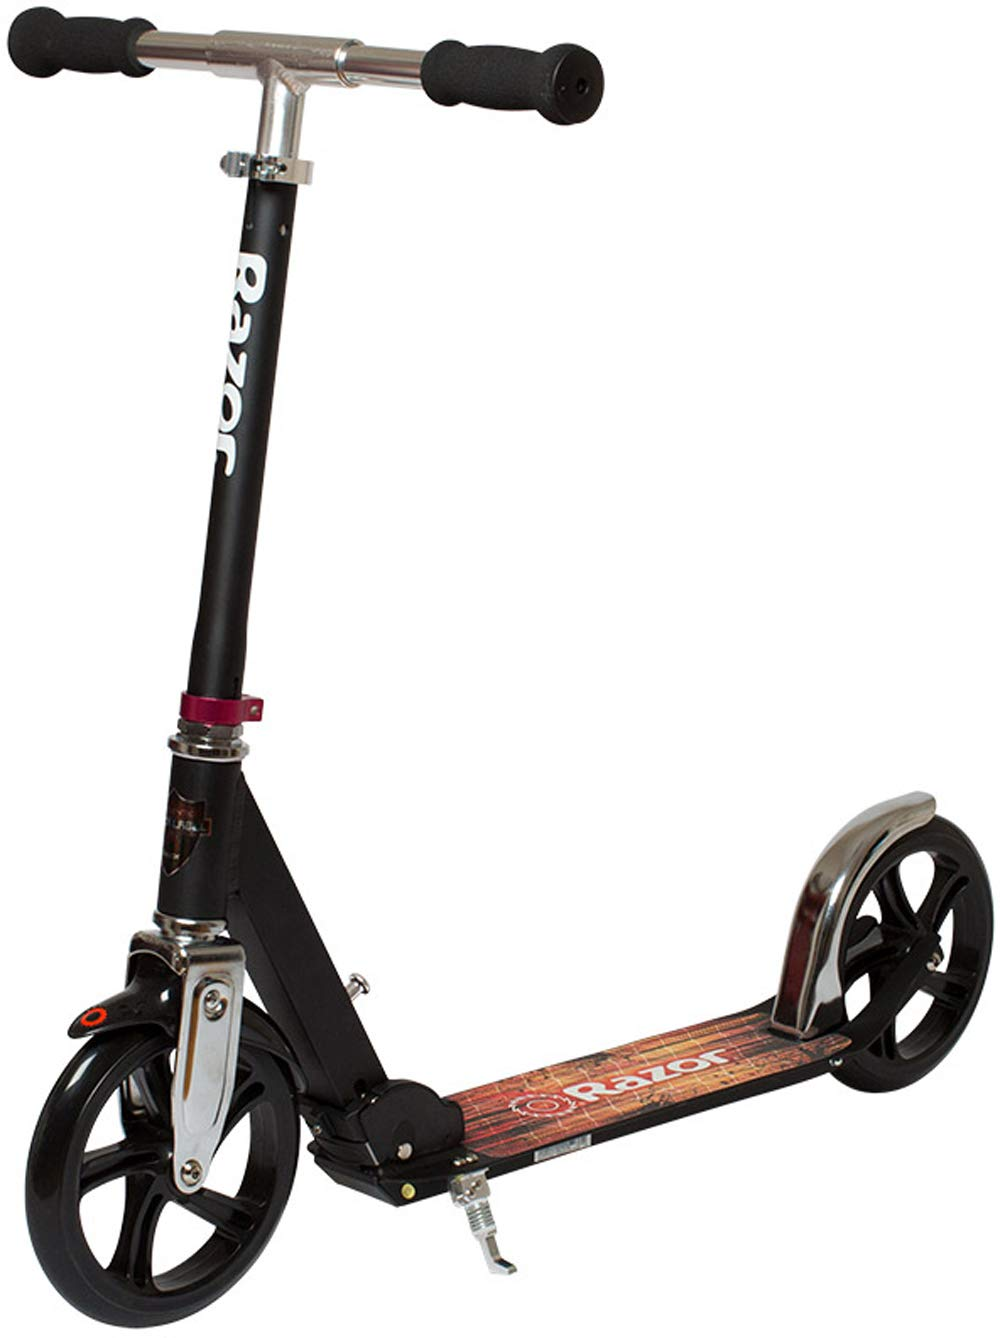 Top 10 Best Kick Scooter For Commuting - Buyer's Guide 1